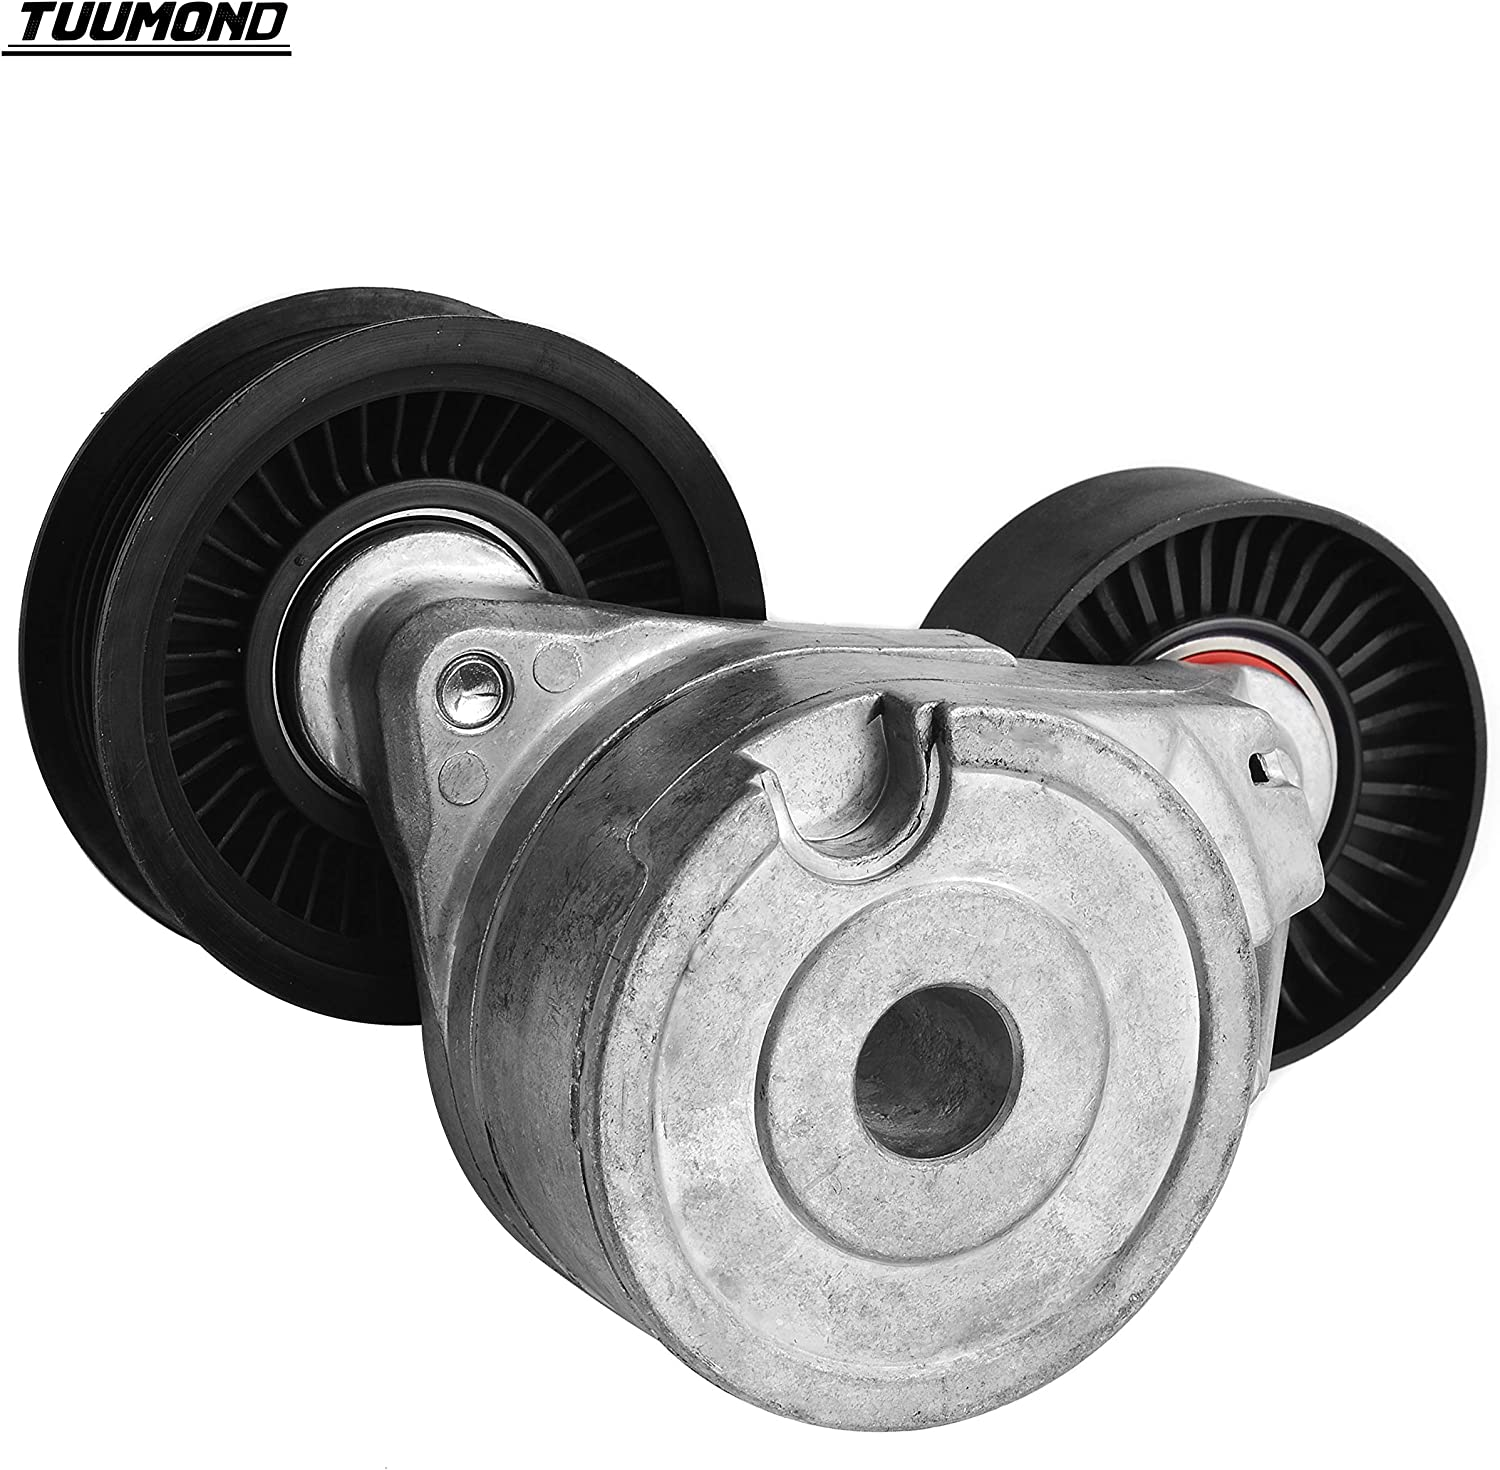 TUUMOND 419-010 Automatic Belt Tensioner Fit for 2000-2001 2004 ...